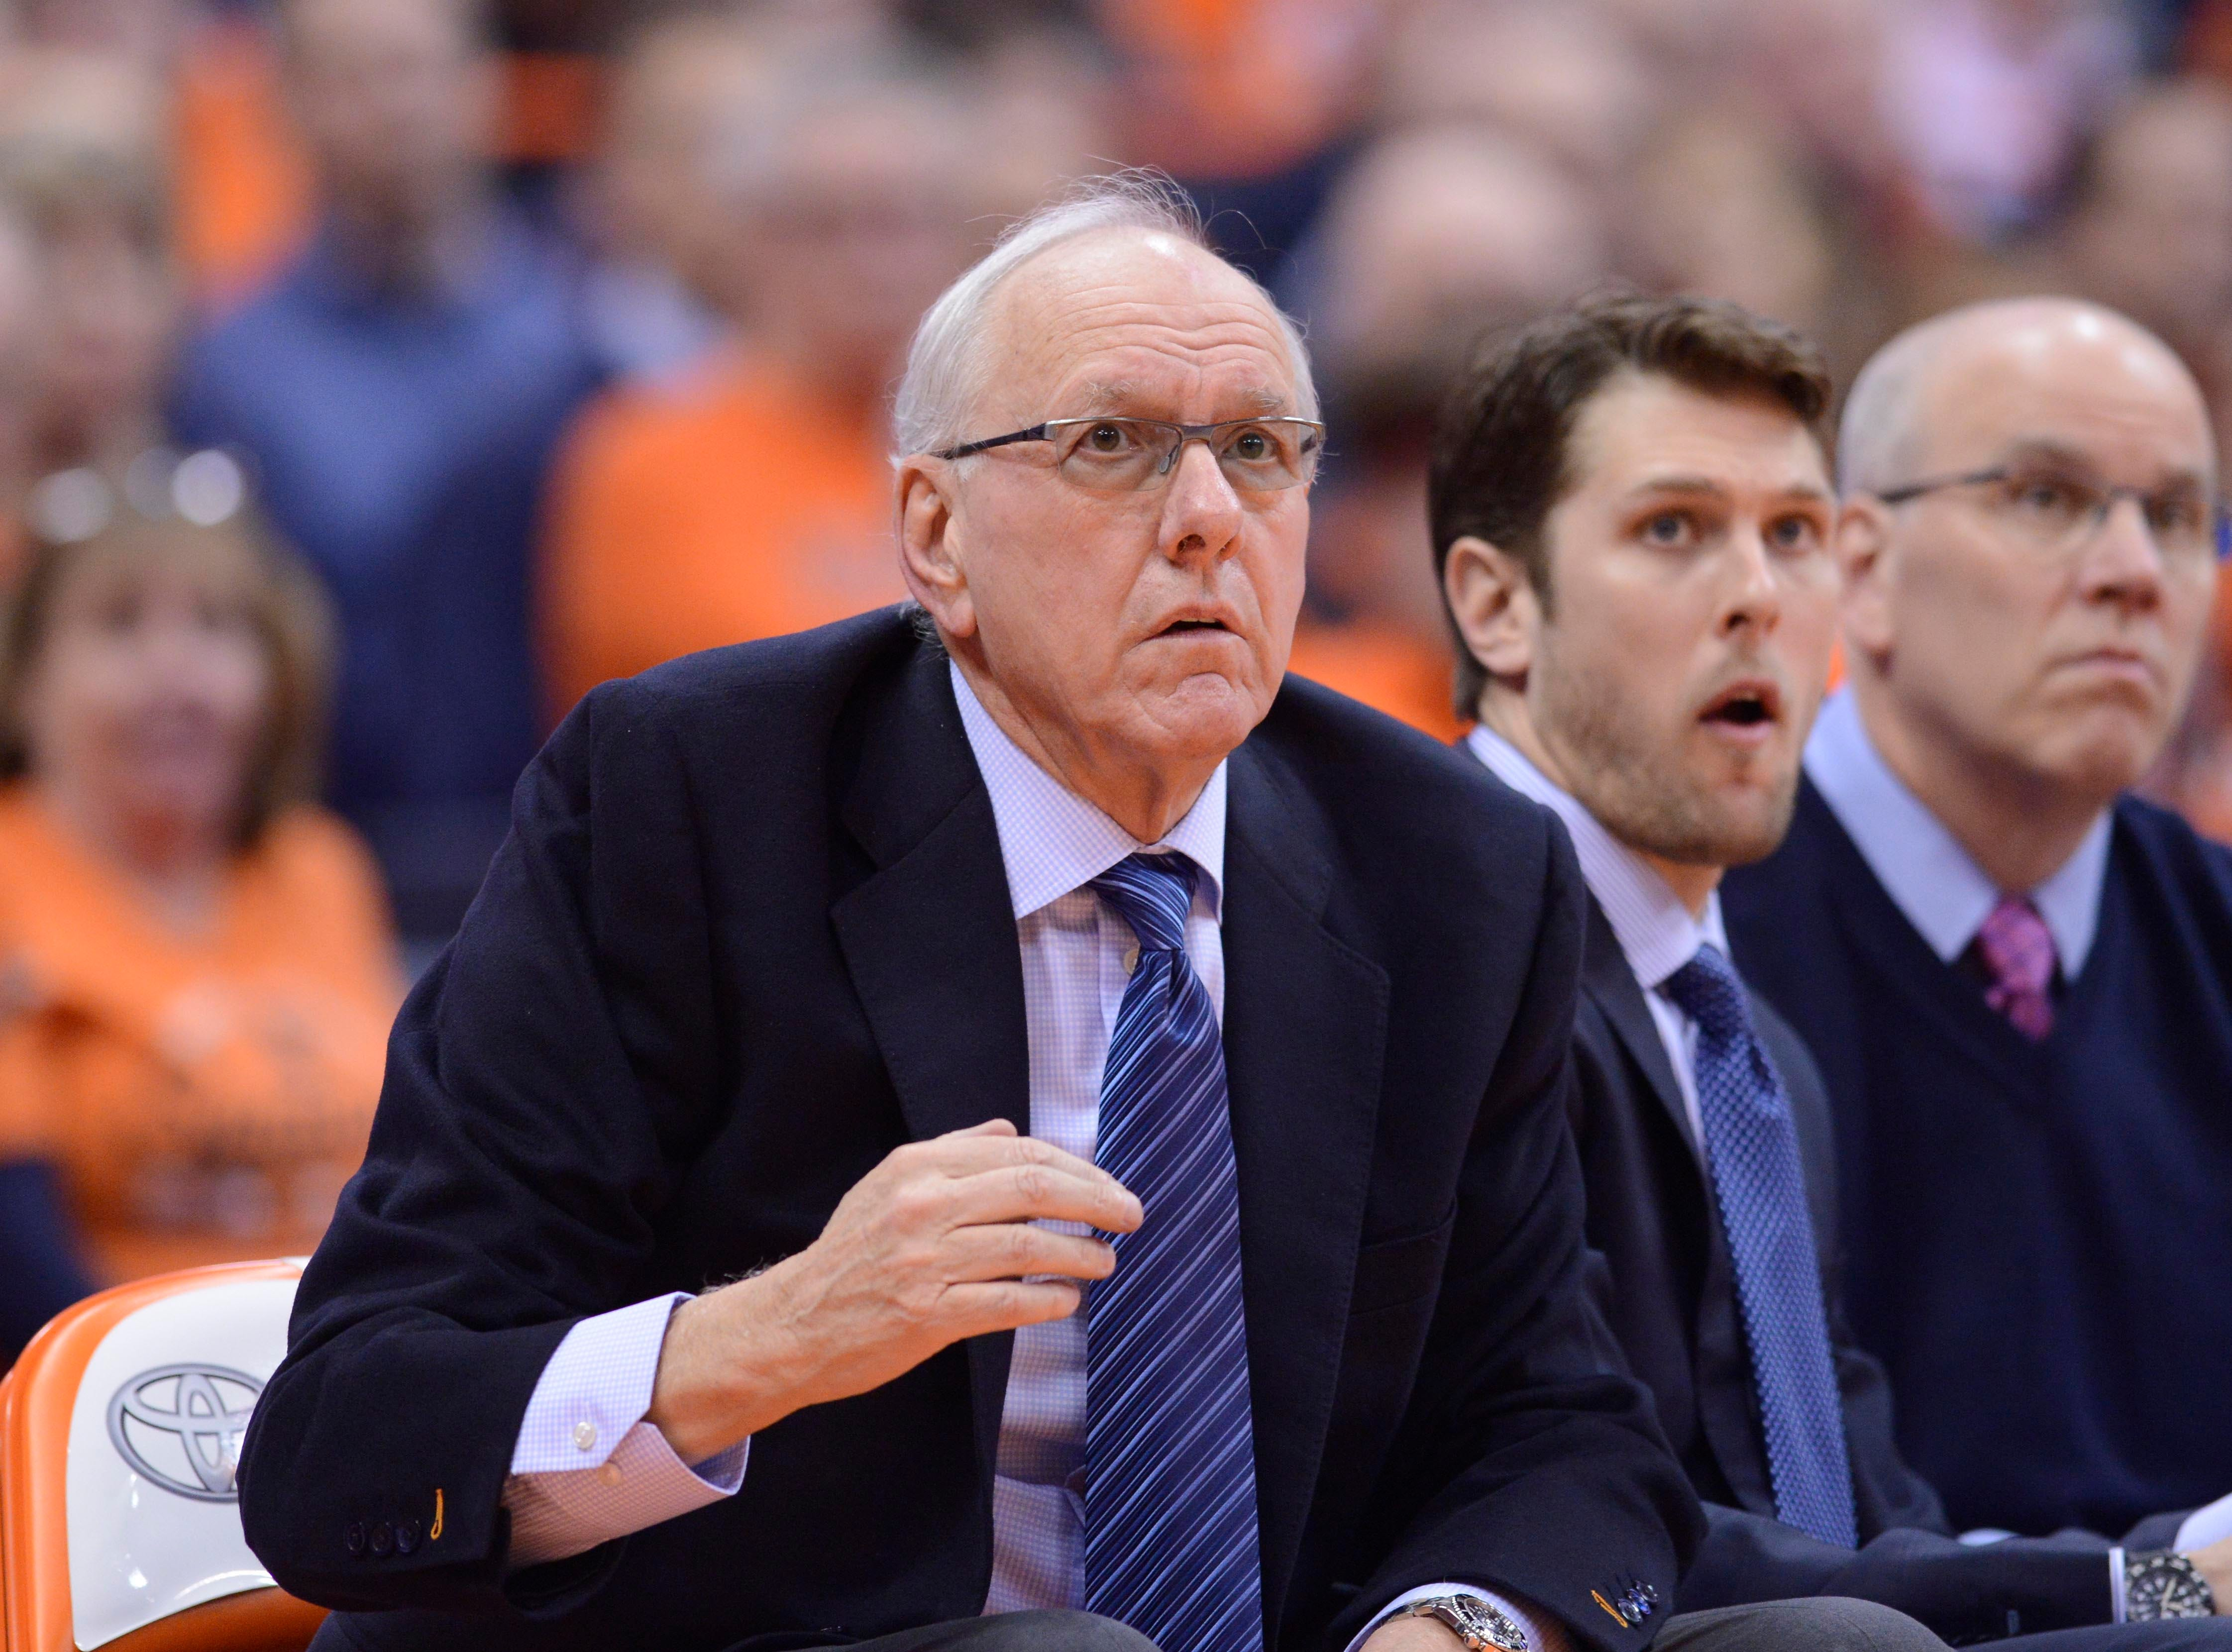 Feb 5, 2019; Syracuse, NY, USA; Syracuse Orange head coach Jim Boeheim watches from the sidelines in the second half against the Florida State Seminoles at the Carrier Dome. Mandatory Credit: Mark Konezny-USA TODAY Sports